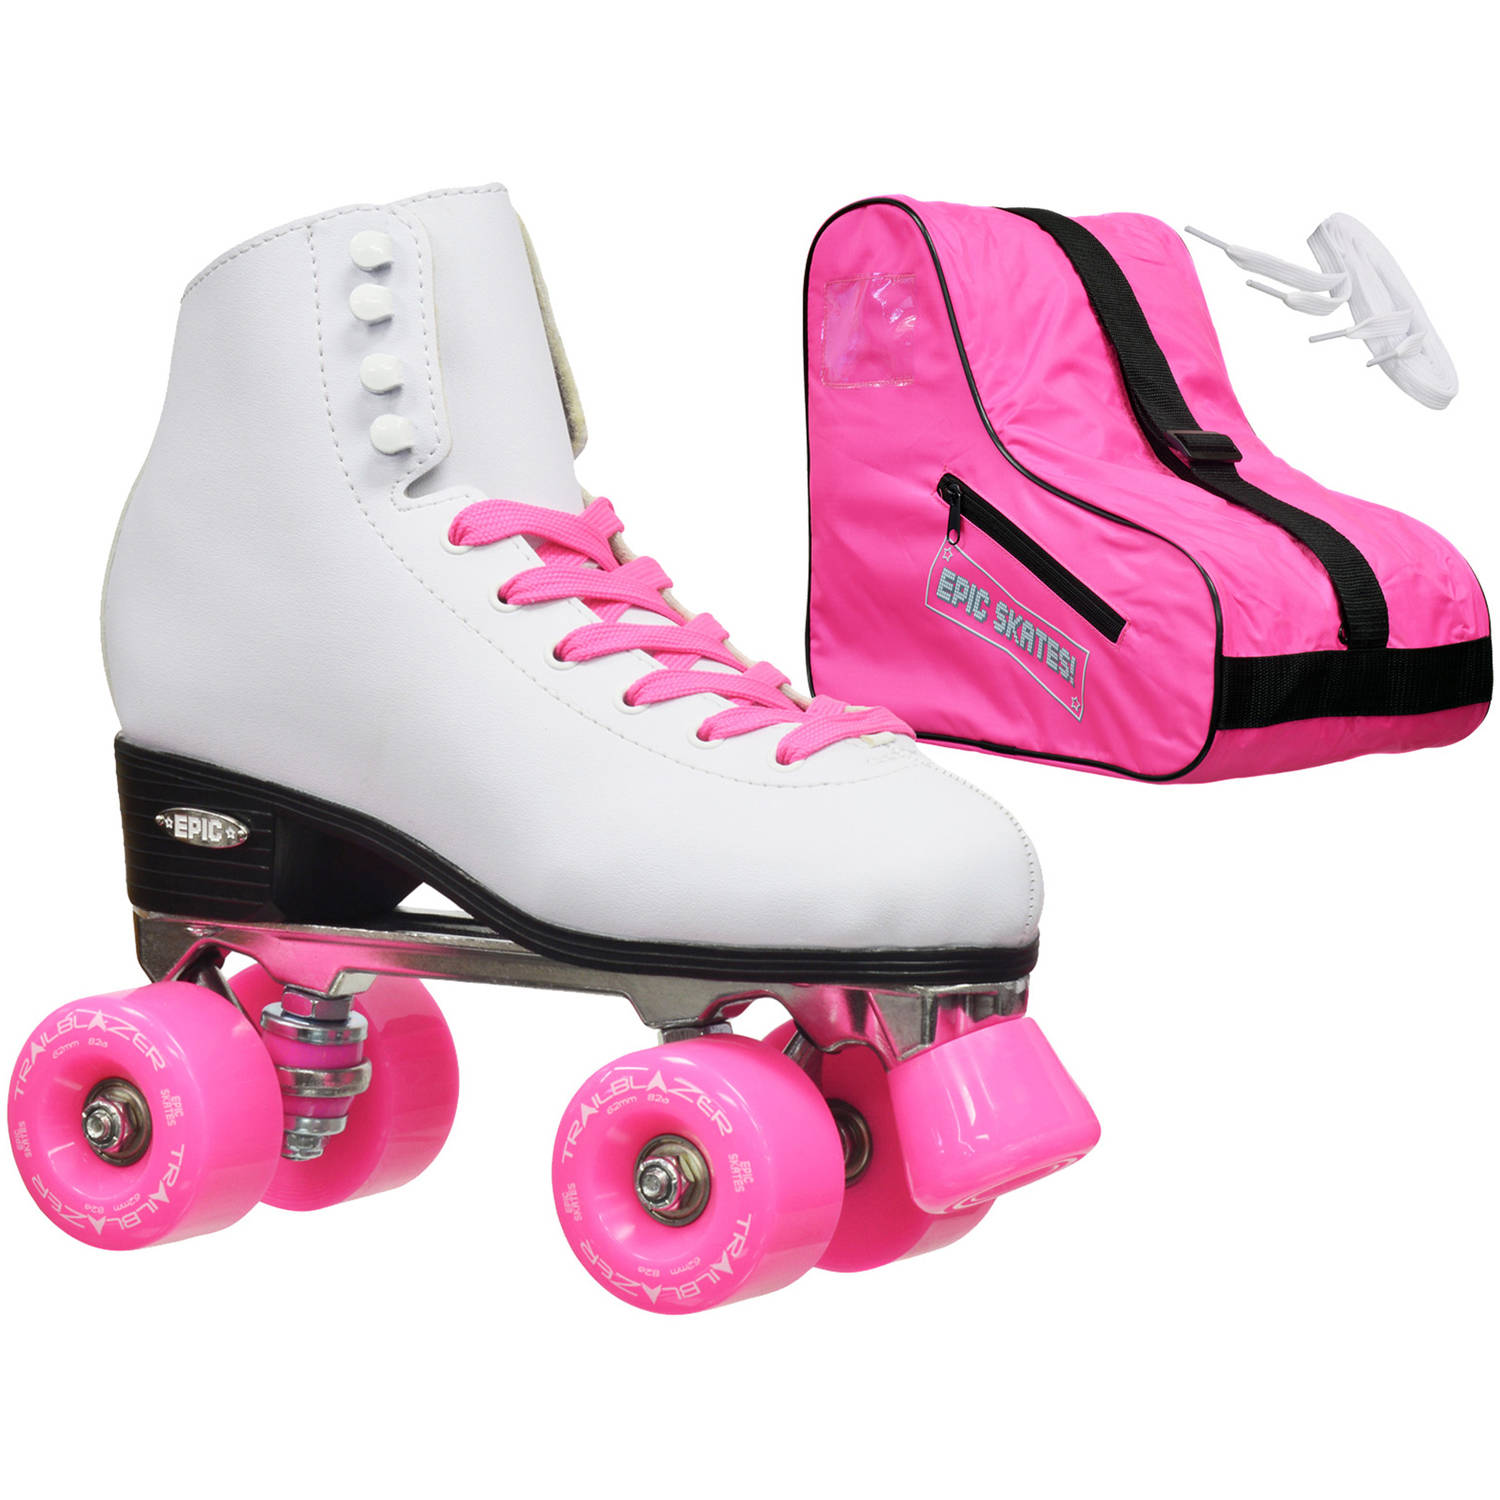 Epic Classic White/Pink Quad Roller Skates Package